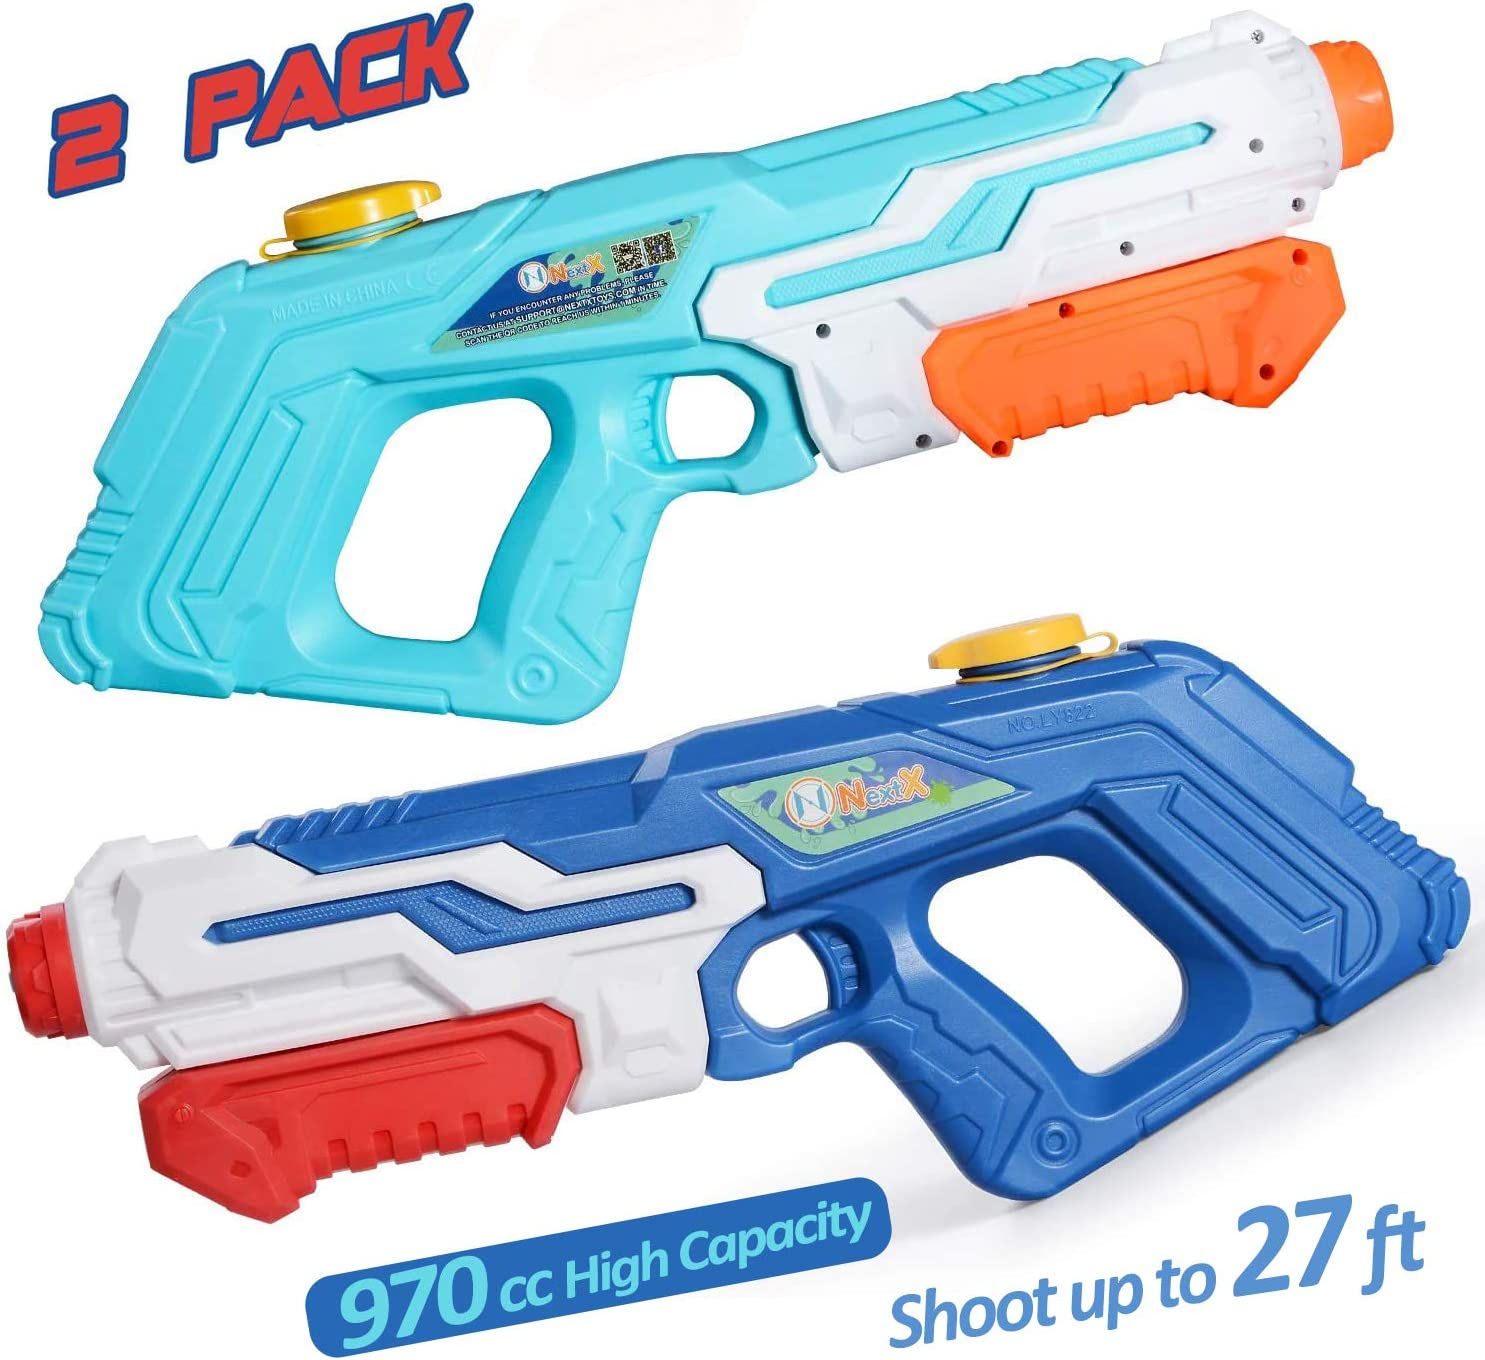 NextX Water Gun Super Blaster, 970 cc High Capacity Squirt Guns for Kids Adult, Water Pistol for Swimming Pool Beach Sand Water Fighting Toy (2 Pack)